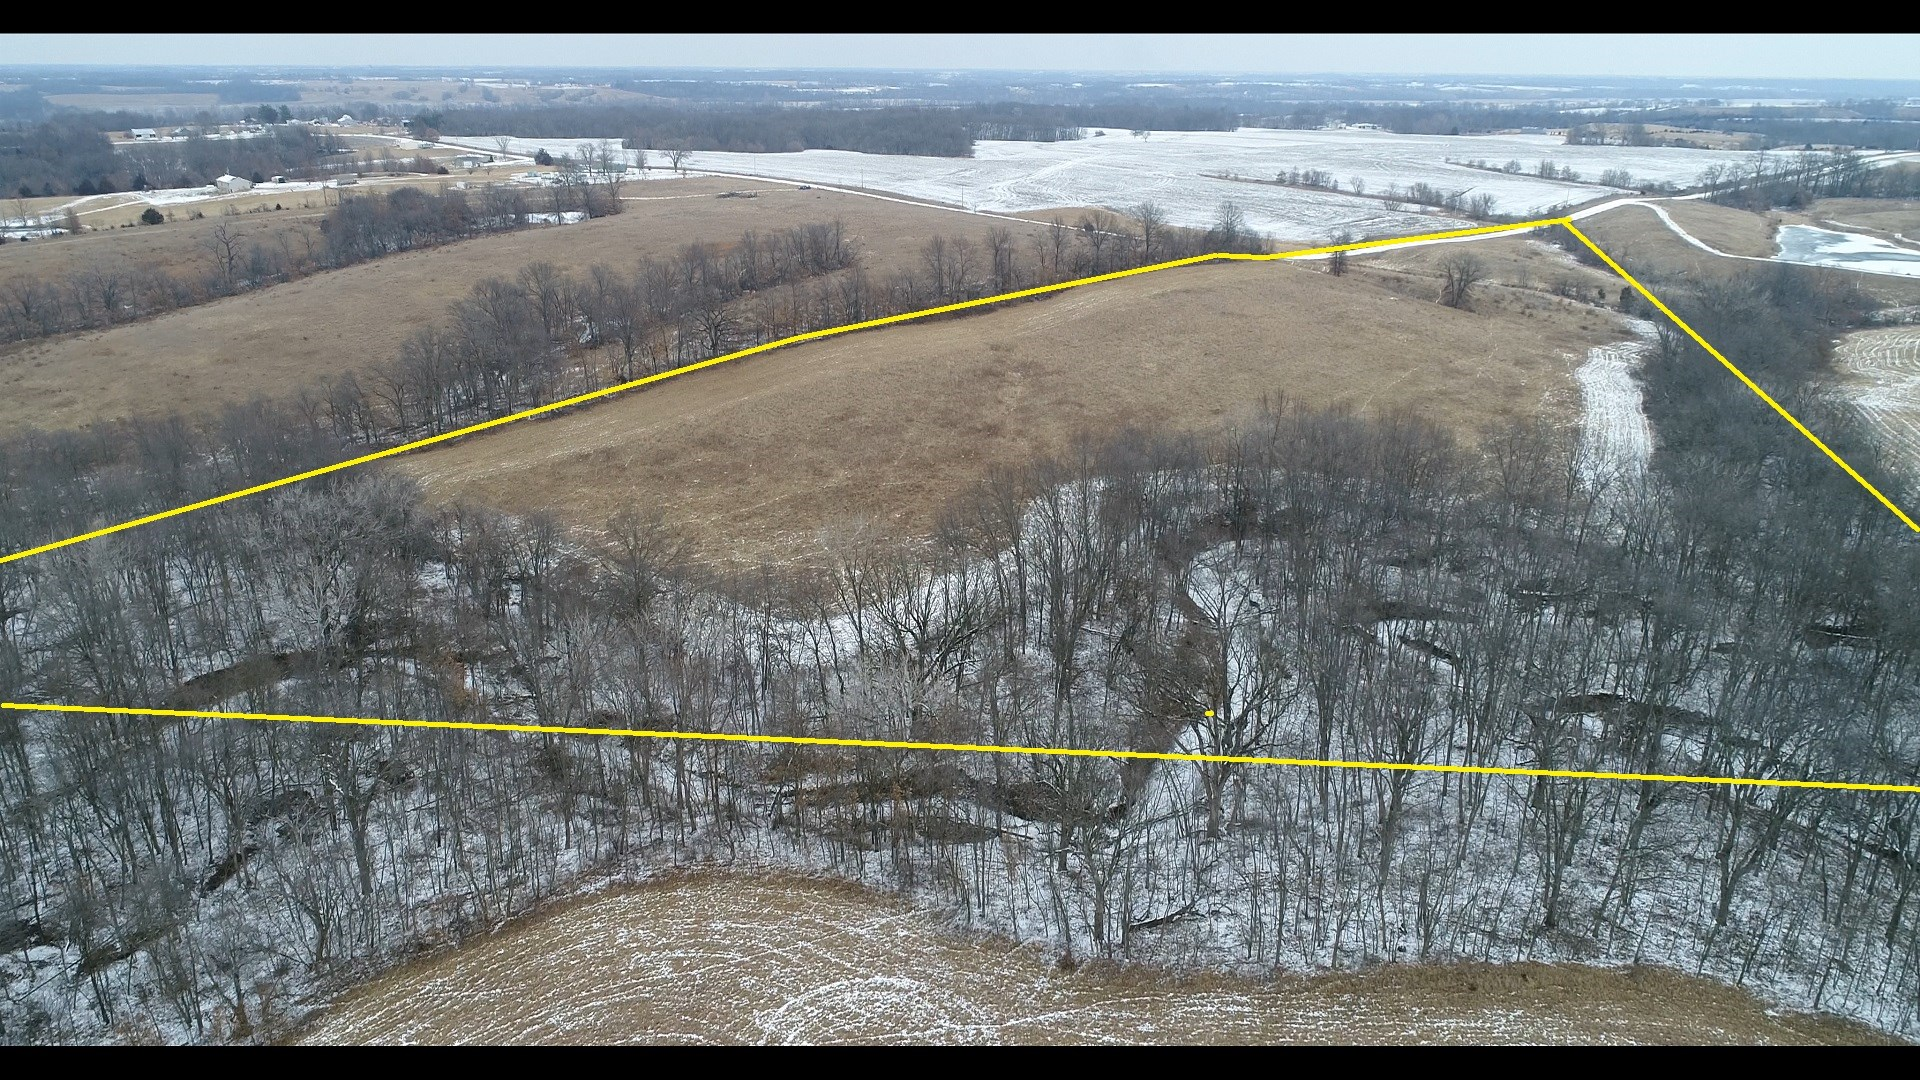 19 ACRES RECREATIONAL LAND FOR SALE, LAND AUCTION